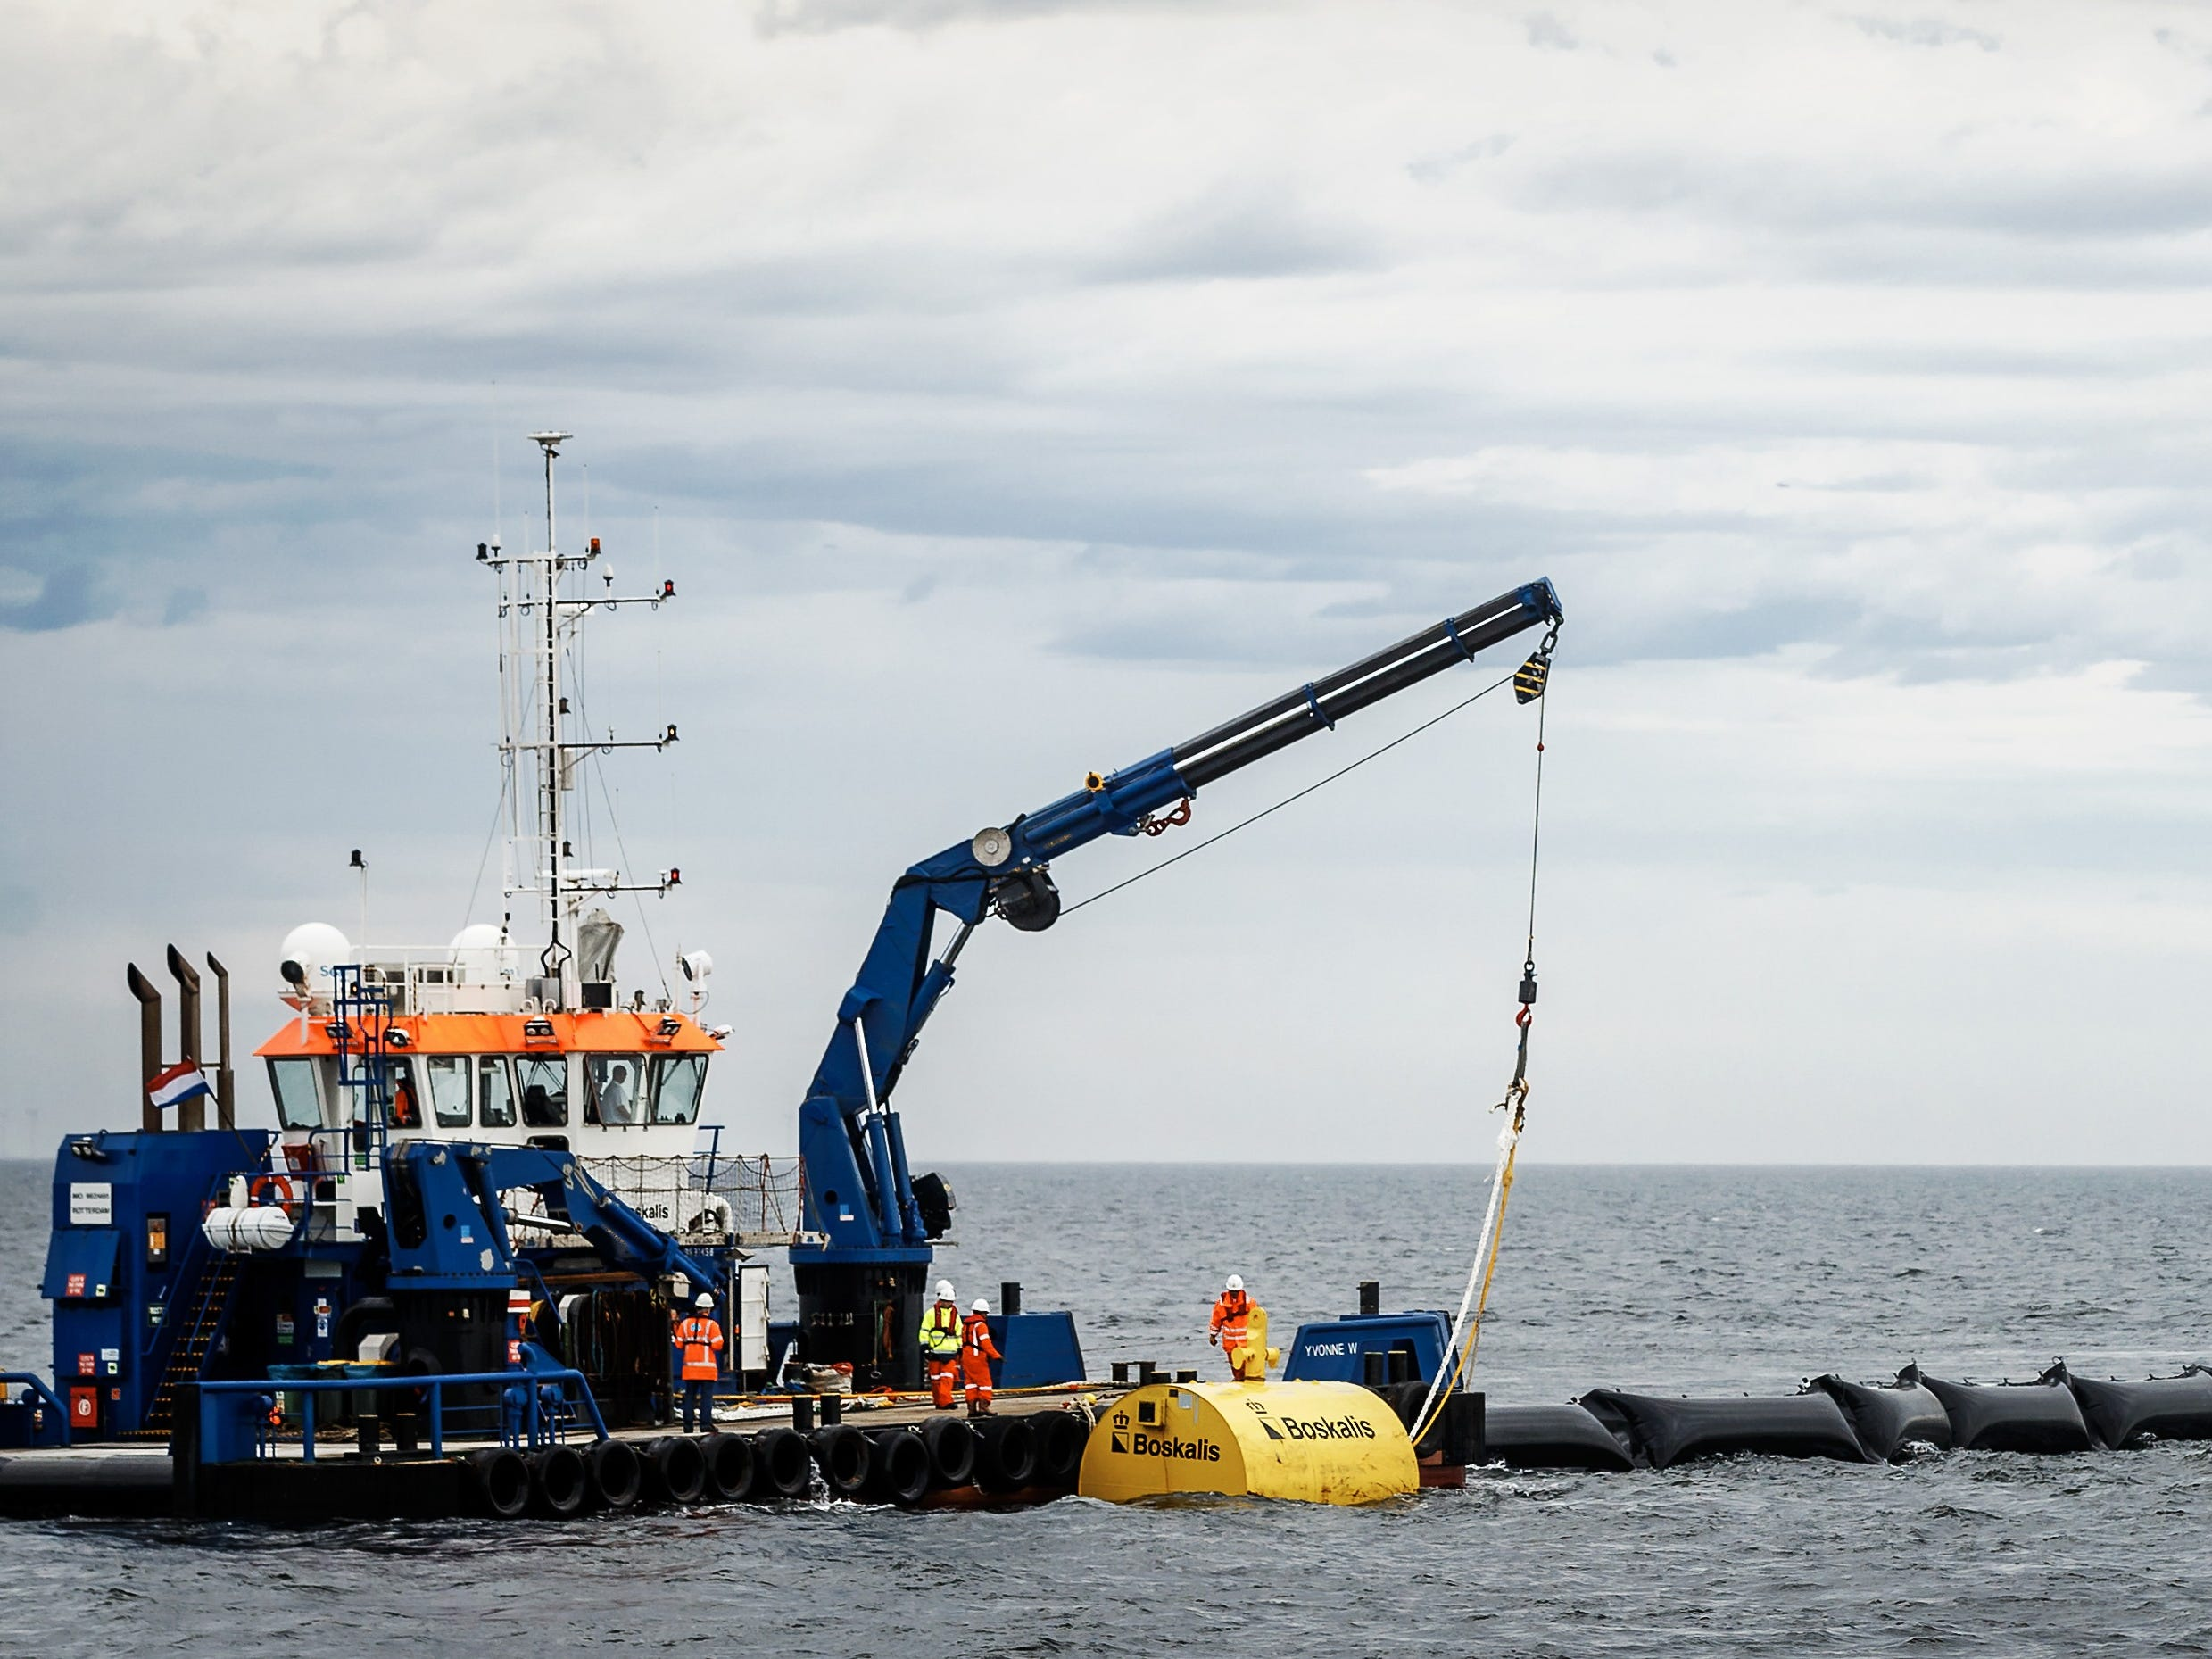 The first prototype of The Ocean Cleanup off the Dutch coast in Scheveningen Netherlands on June 23, 2016.. 